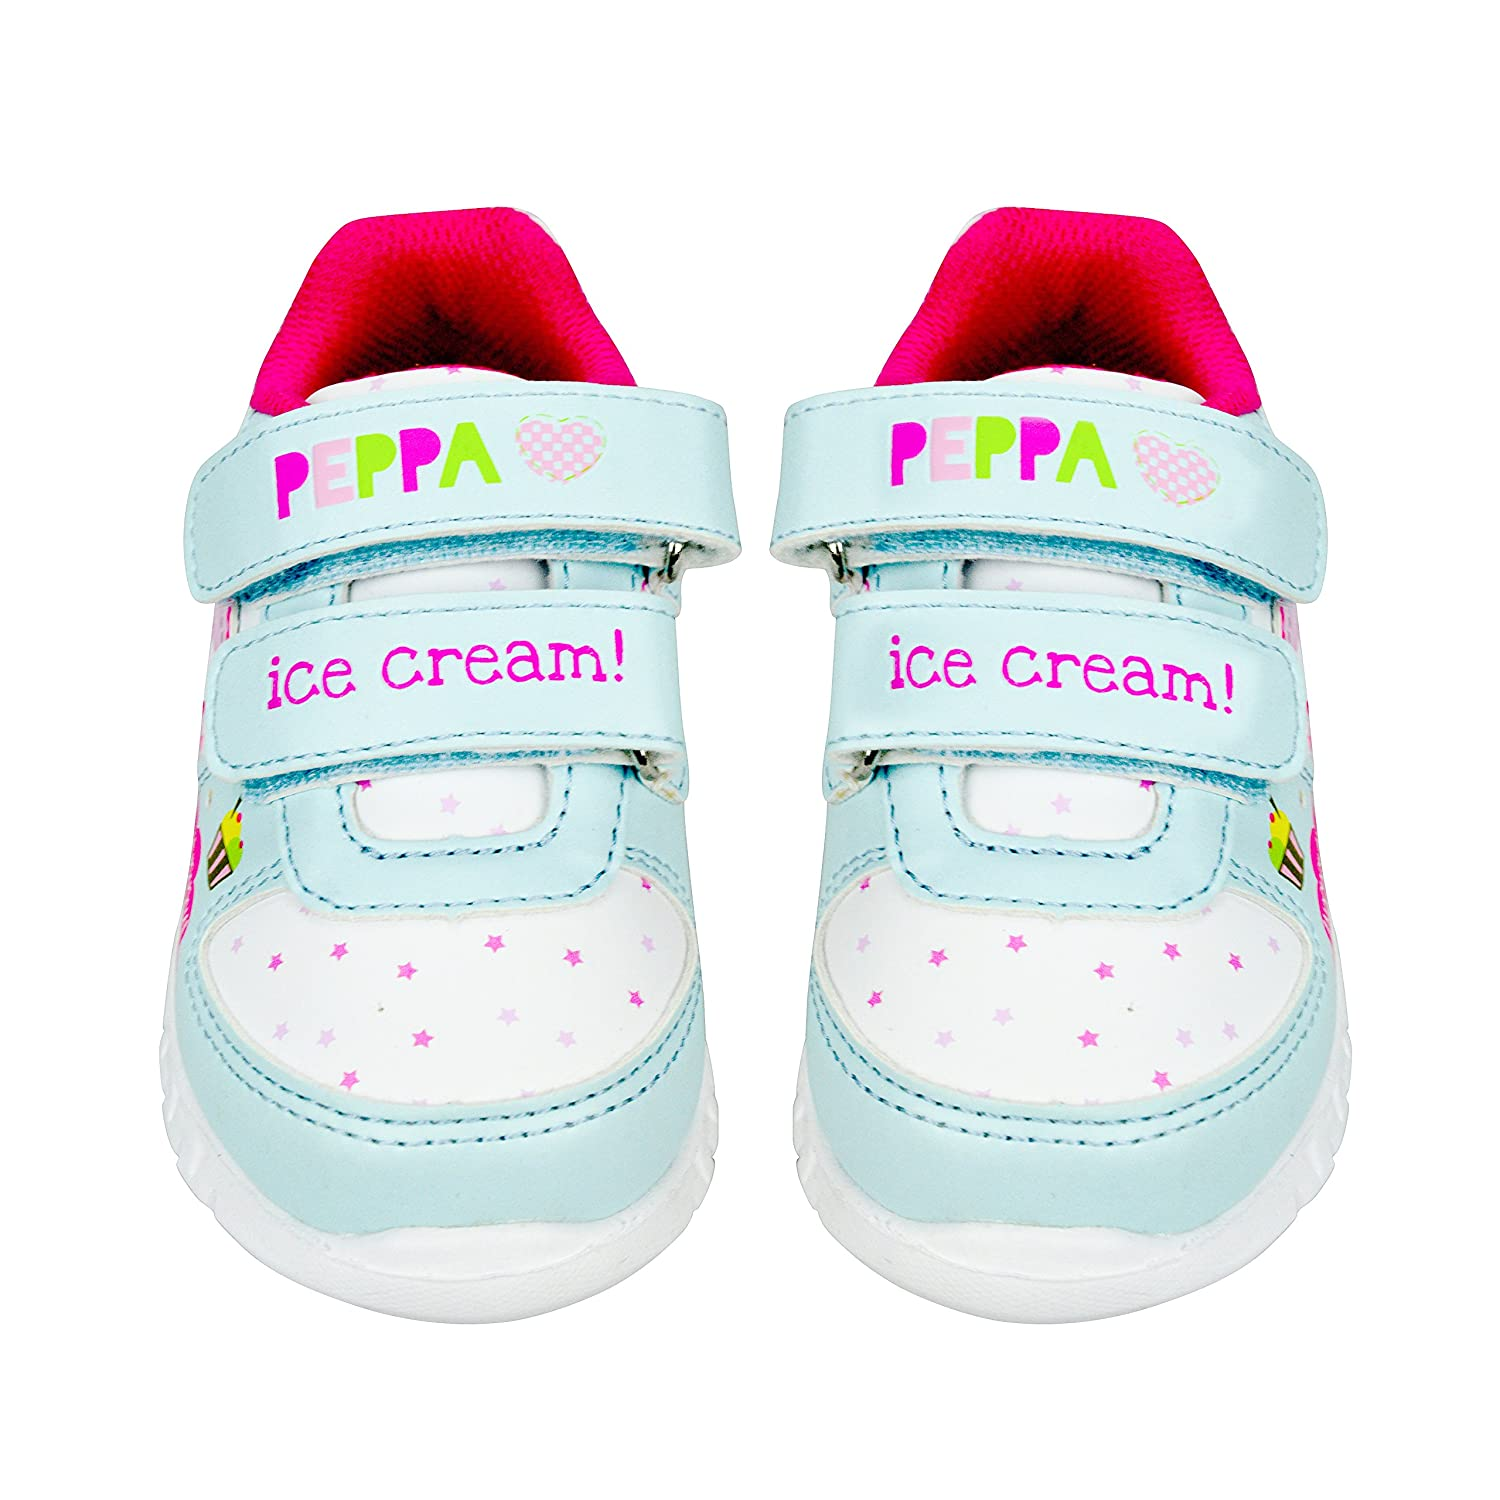 PAXT306-AM-5 Peppa Pig Girls Sneakers with Flashing Lights Pink